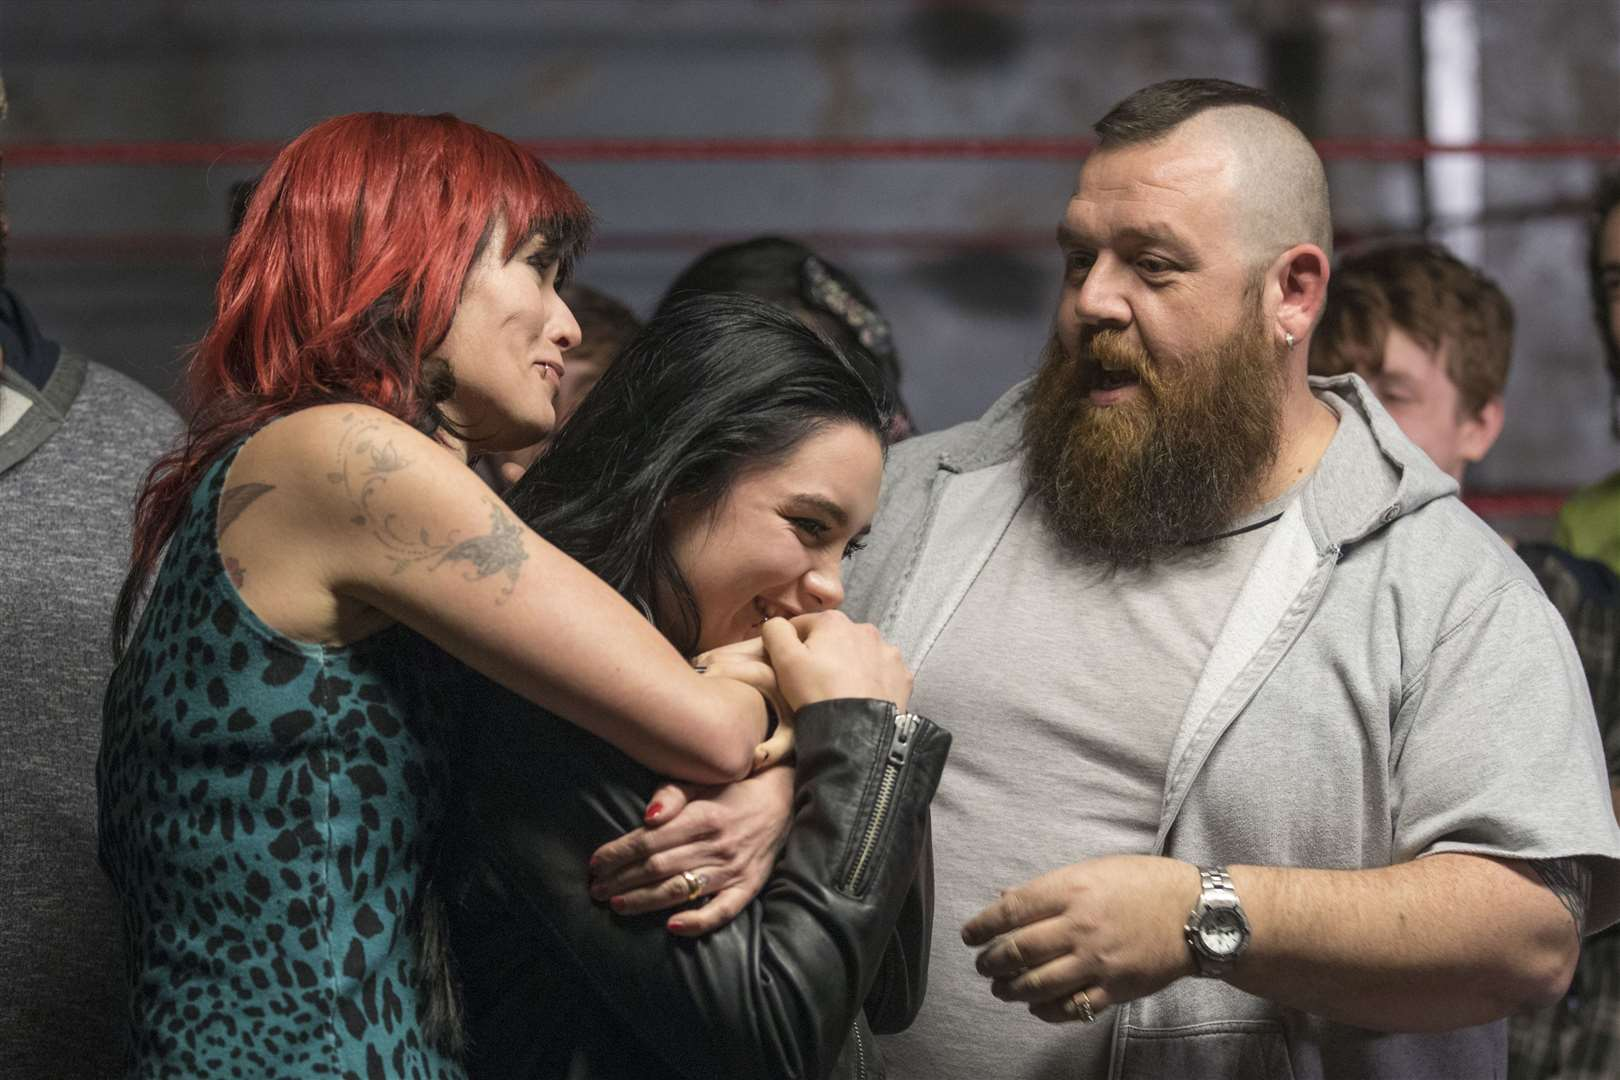 Lena Headey as Julia Knight, Florence Pugh as Paige Knight and Nick Frost as Ricky Knight in Fighting with My Family. Picture by PA Photo/Metro-Goldwyn-Mayer Pictures Inc./Robert Viglasky.